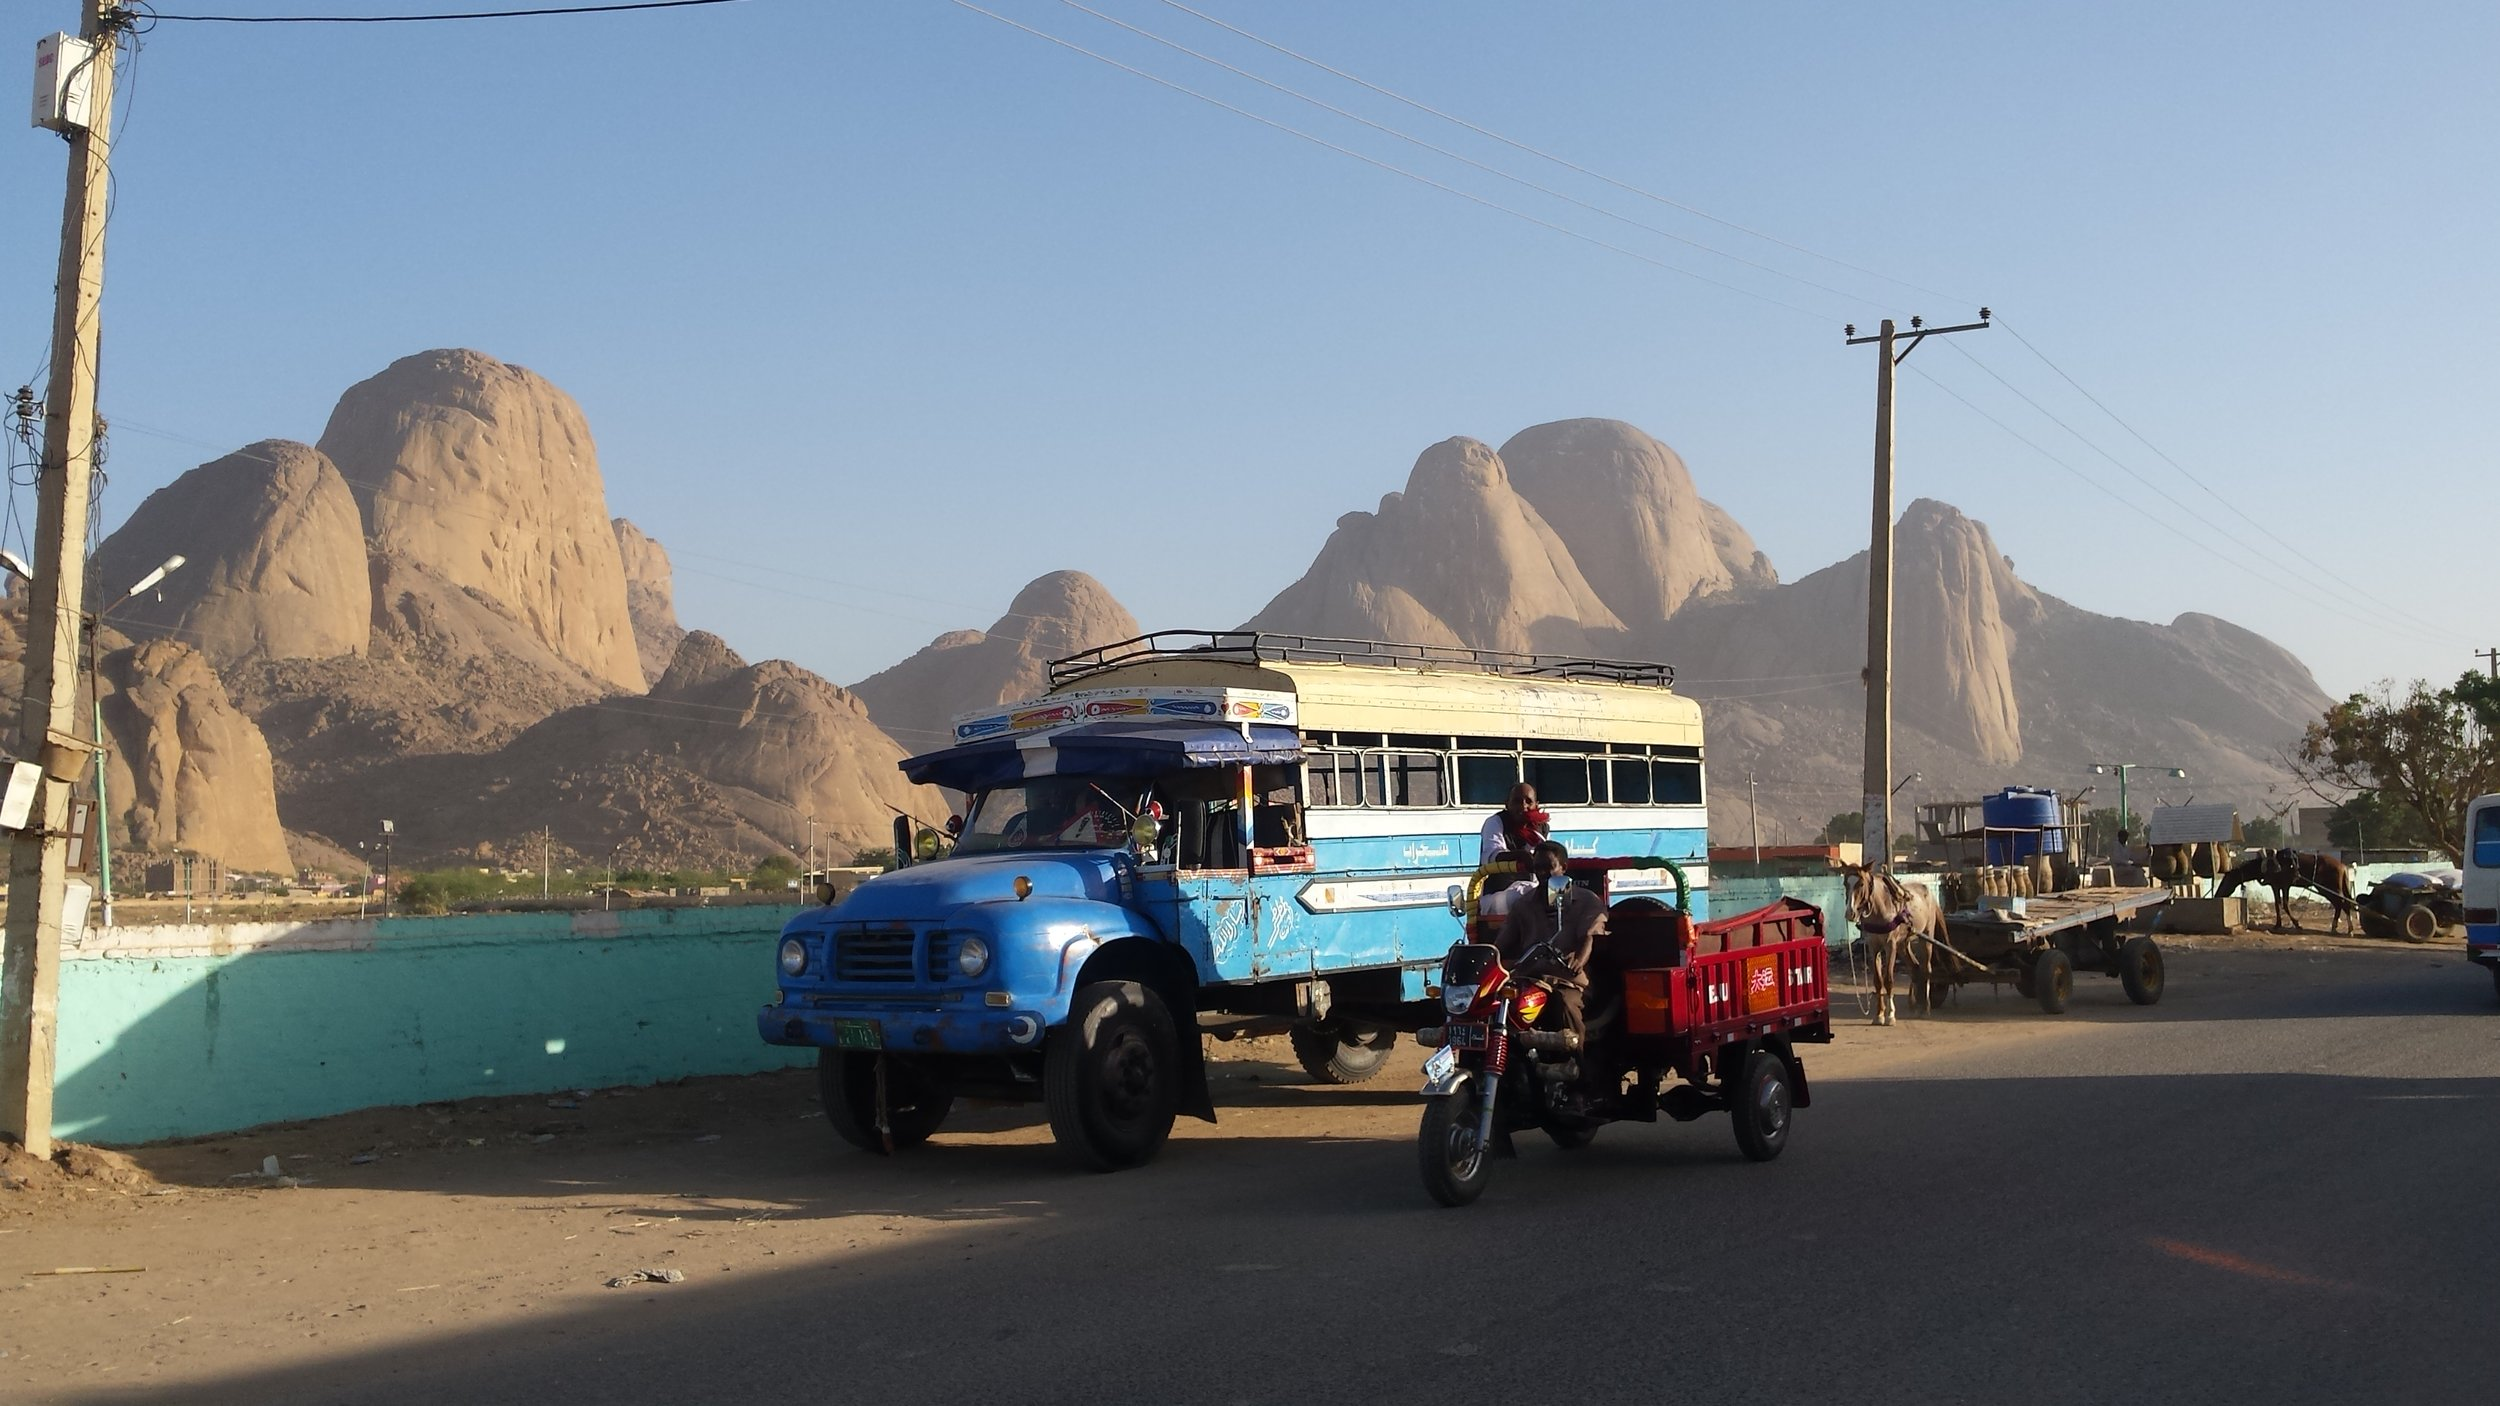 From the Red Sea coast we traveled to Kassala, where the distinctive Taka Mountains loom over the city…